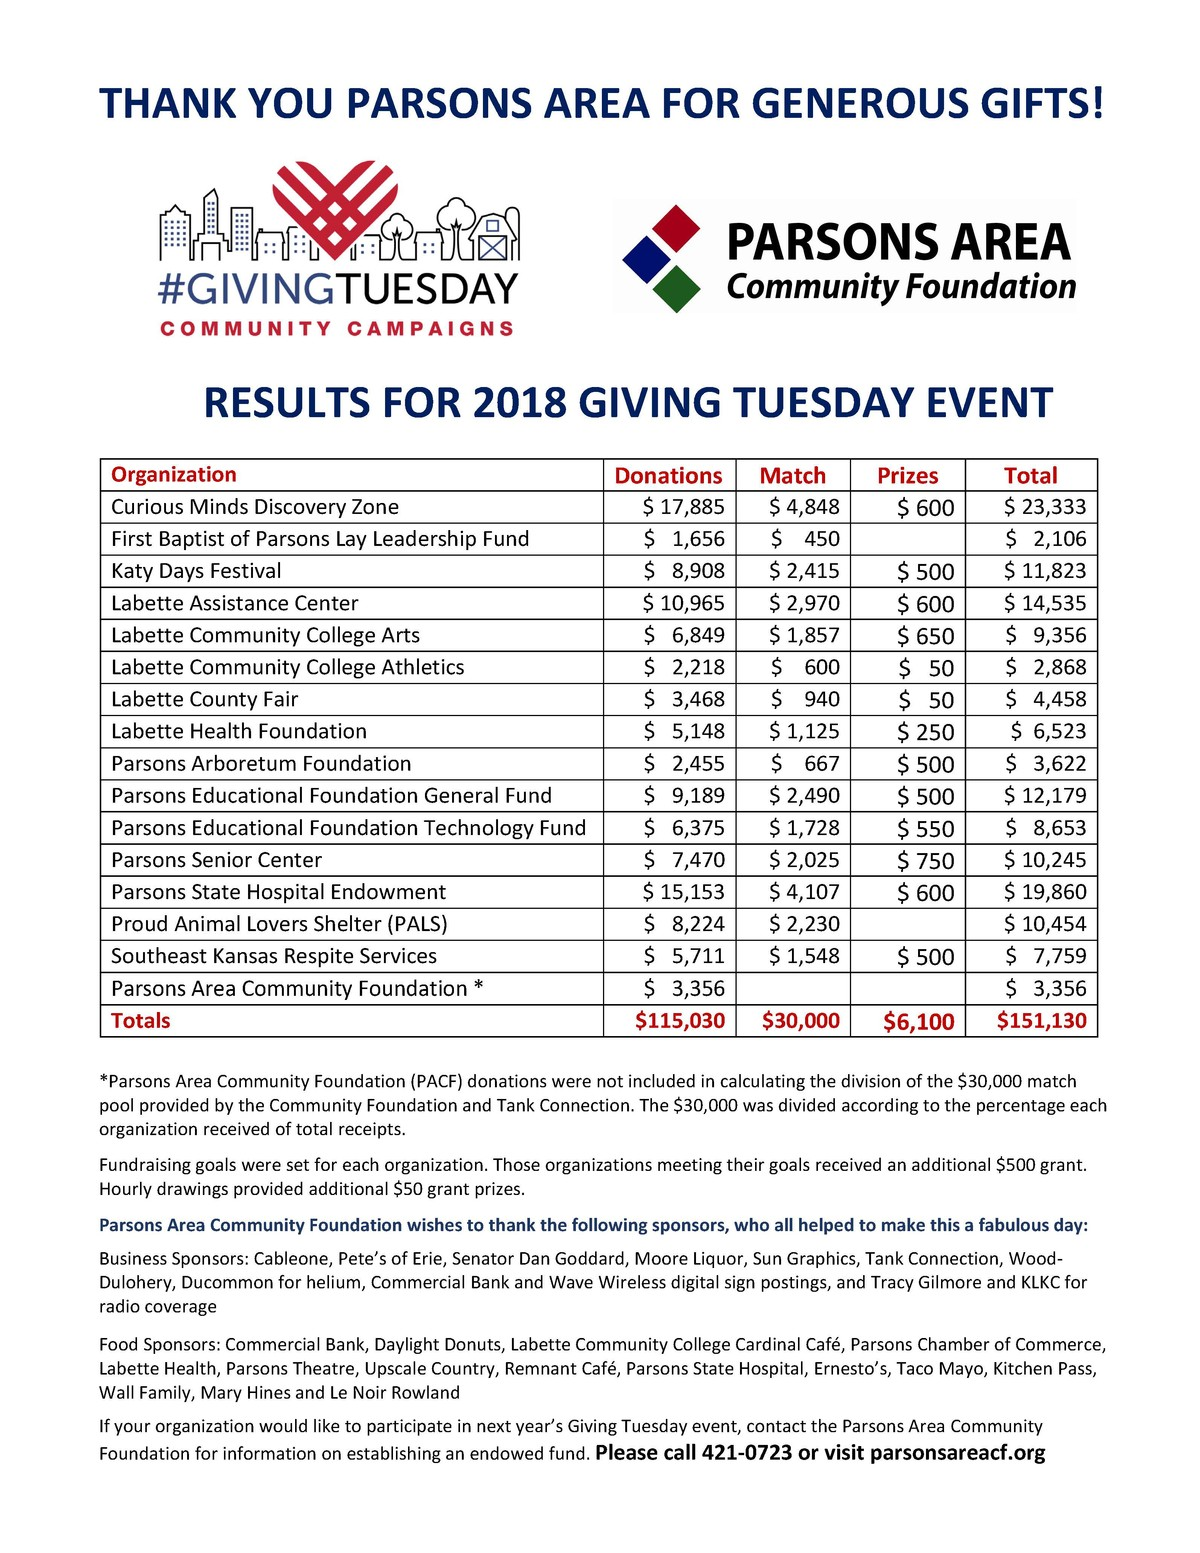 Giving Tuesday Parsons Area Community Foundation